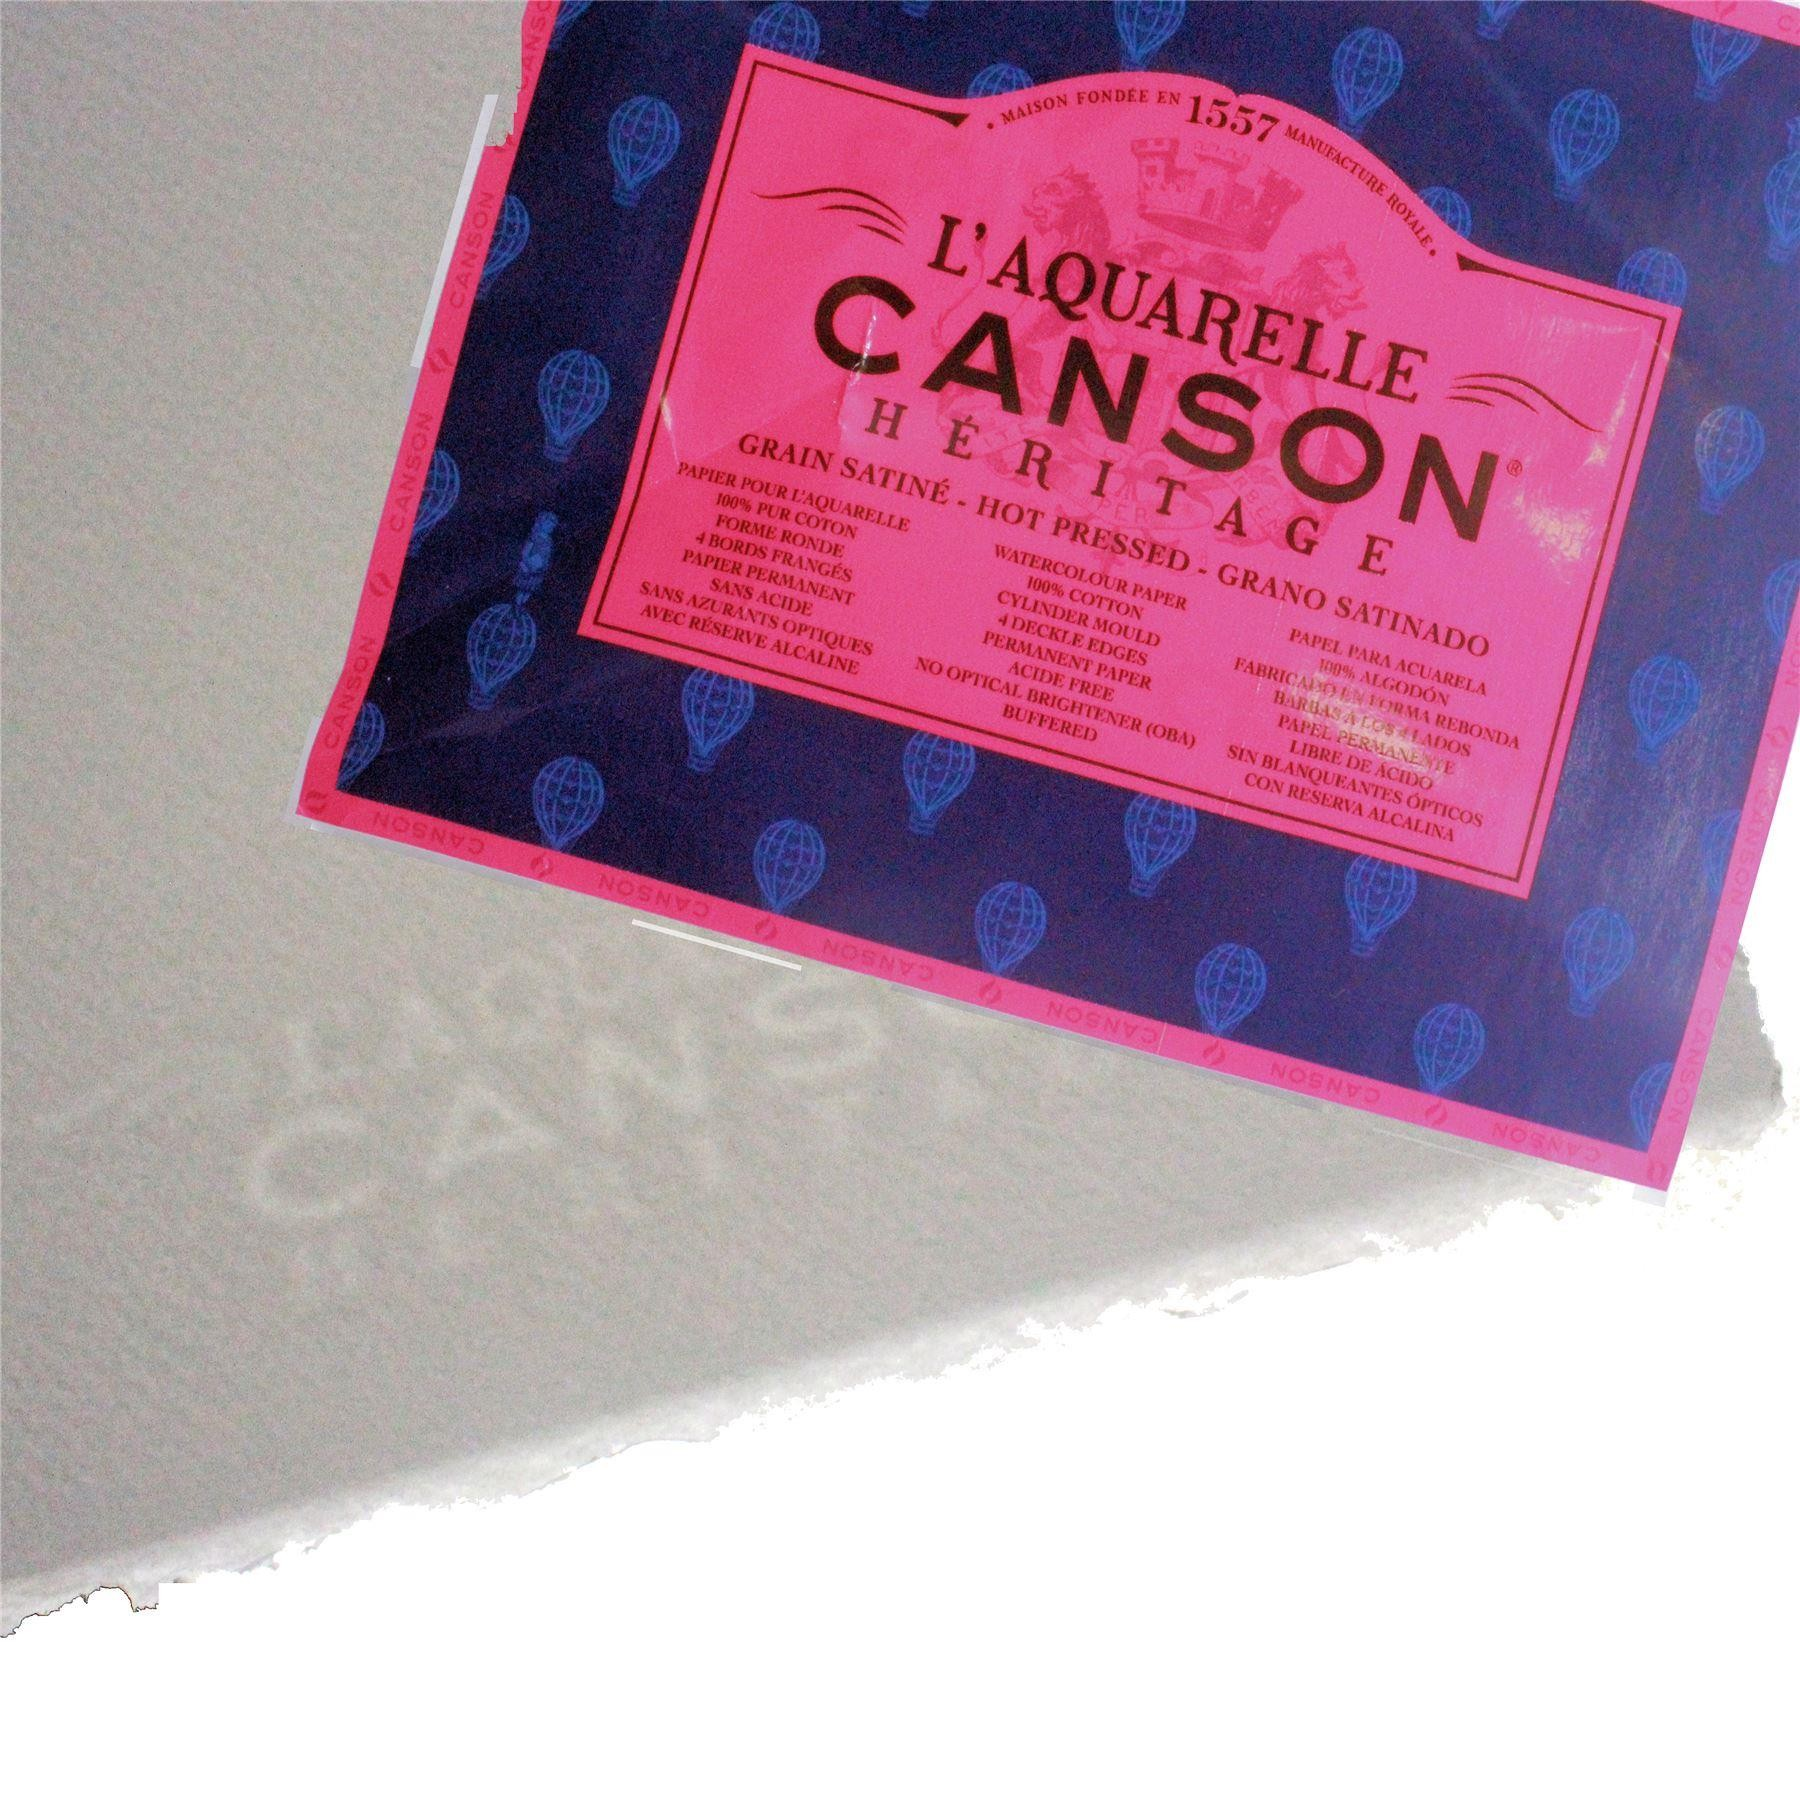 Canson L'Aquarelle cotton Heritage artists watercolour paper hot pressed smooth paper